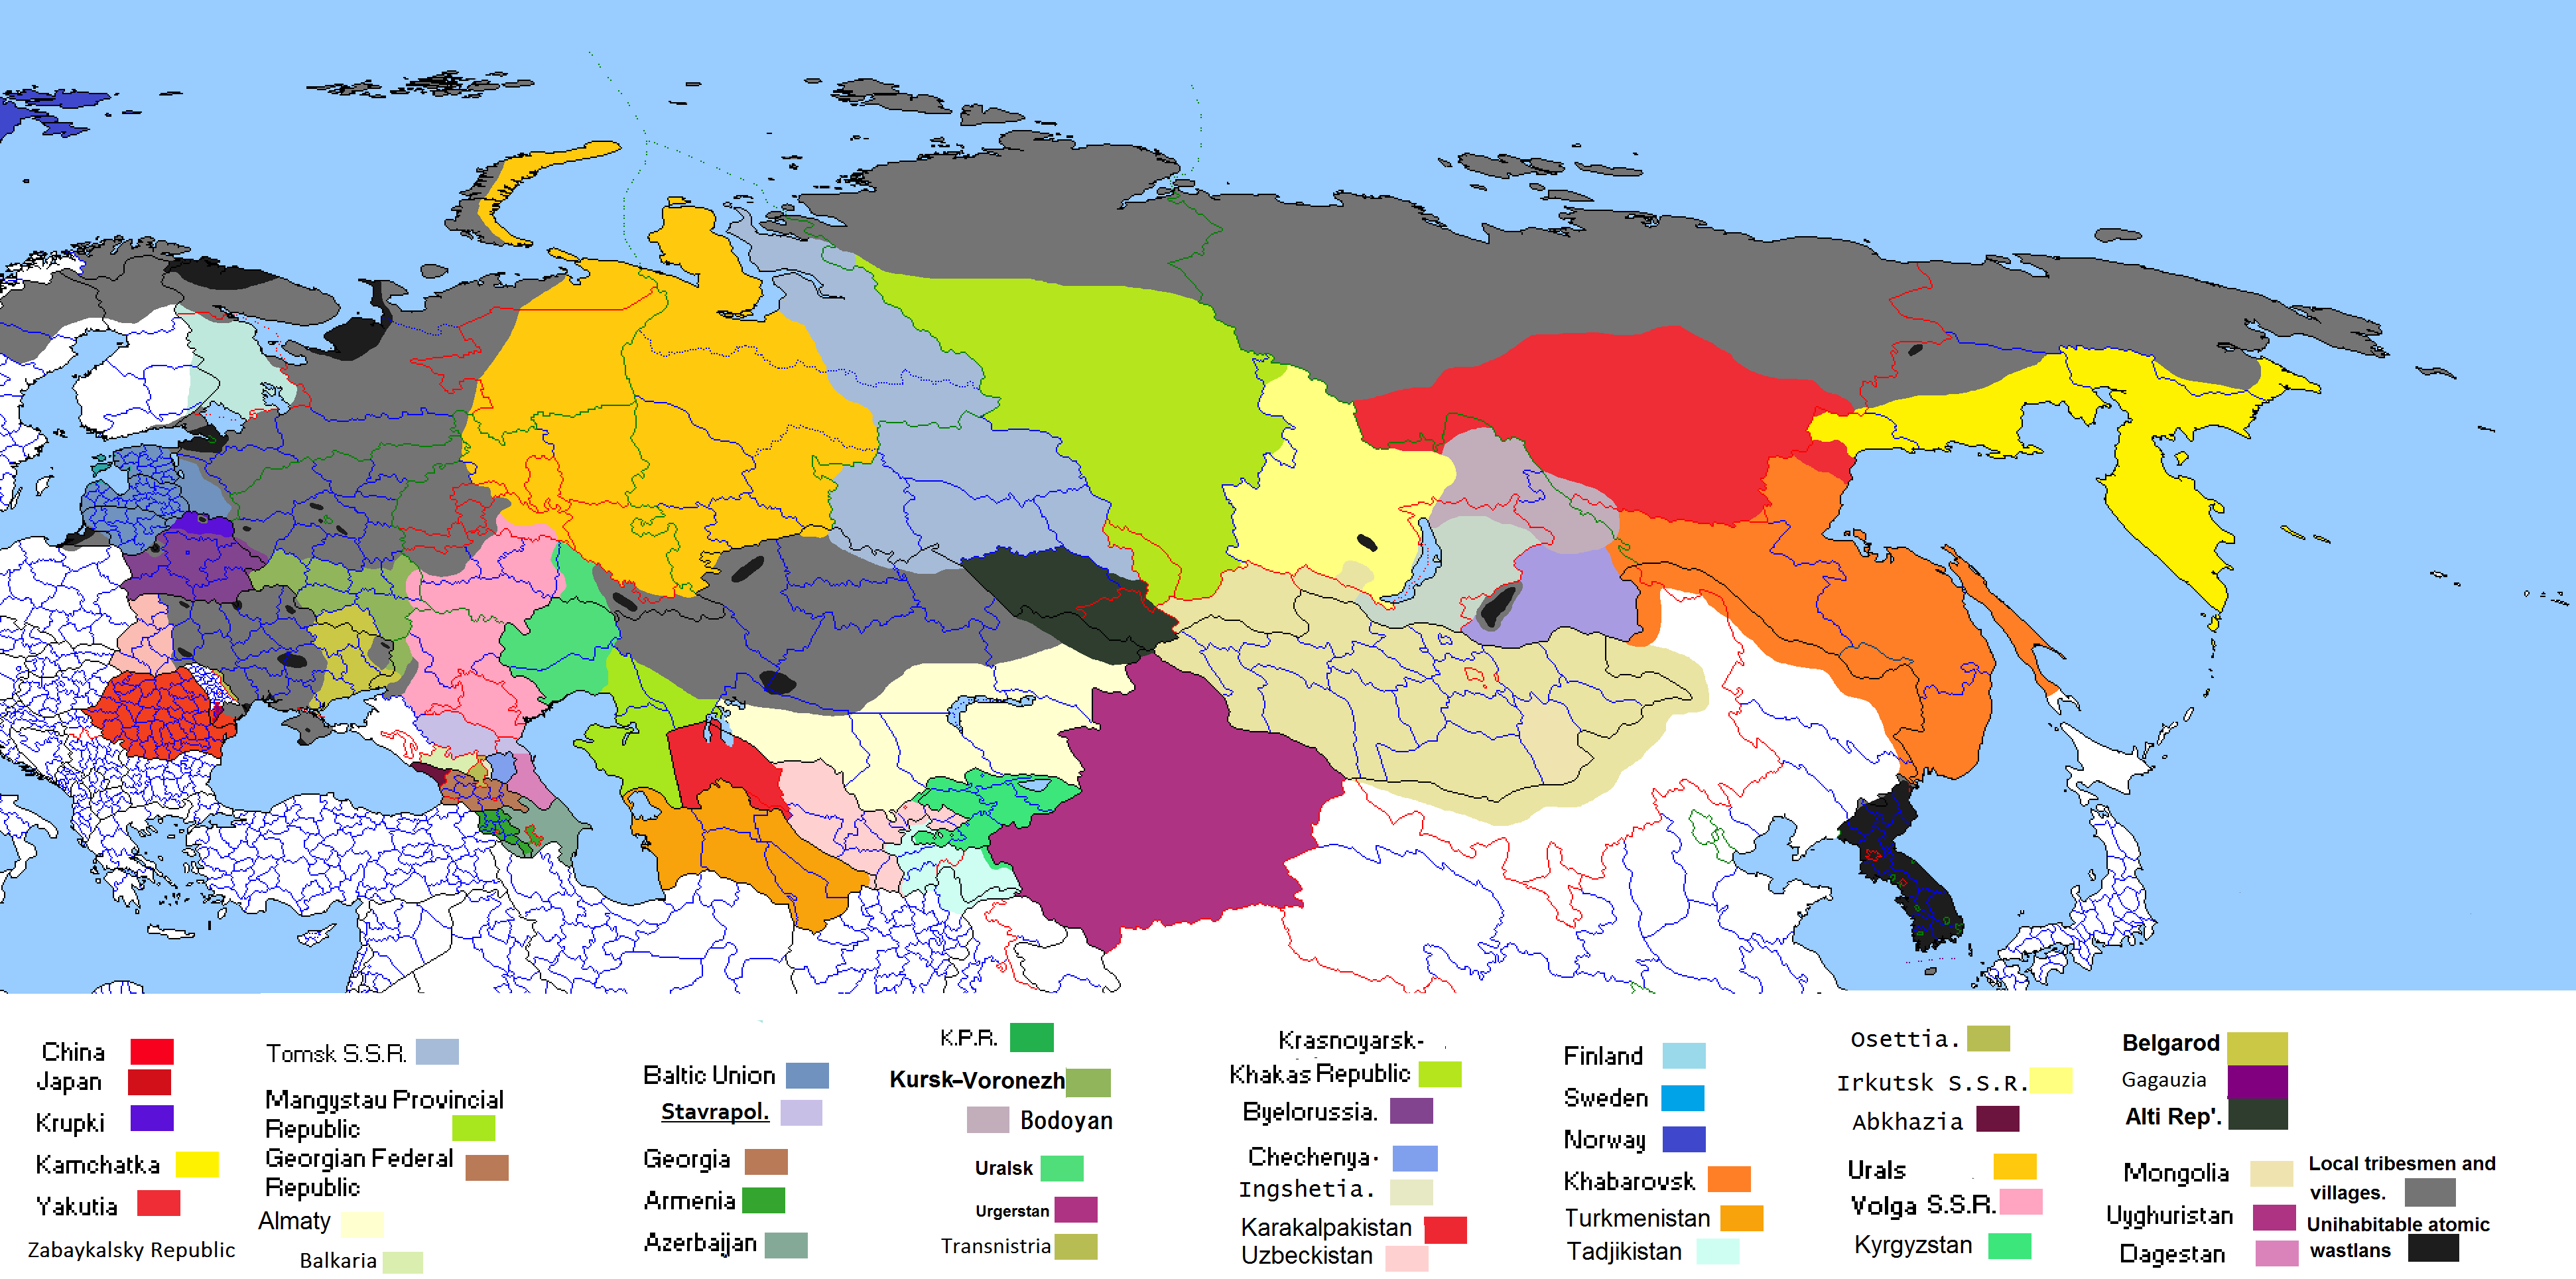 Tajikistan The Apocalypse Implausable Alternate History - Middle east map dushanbe